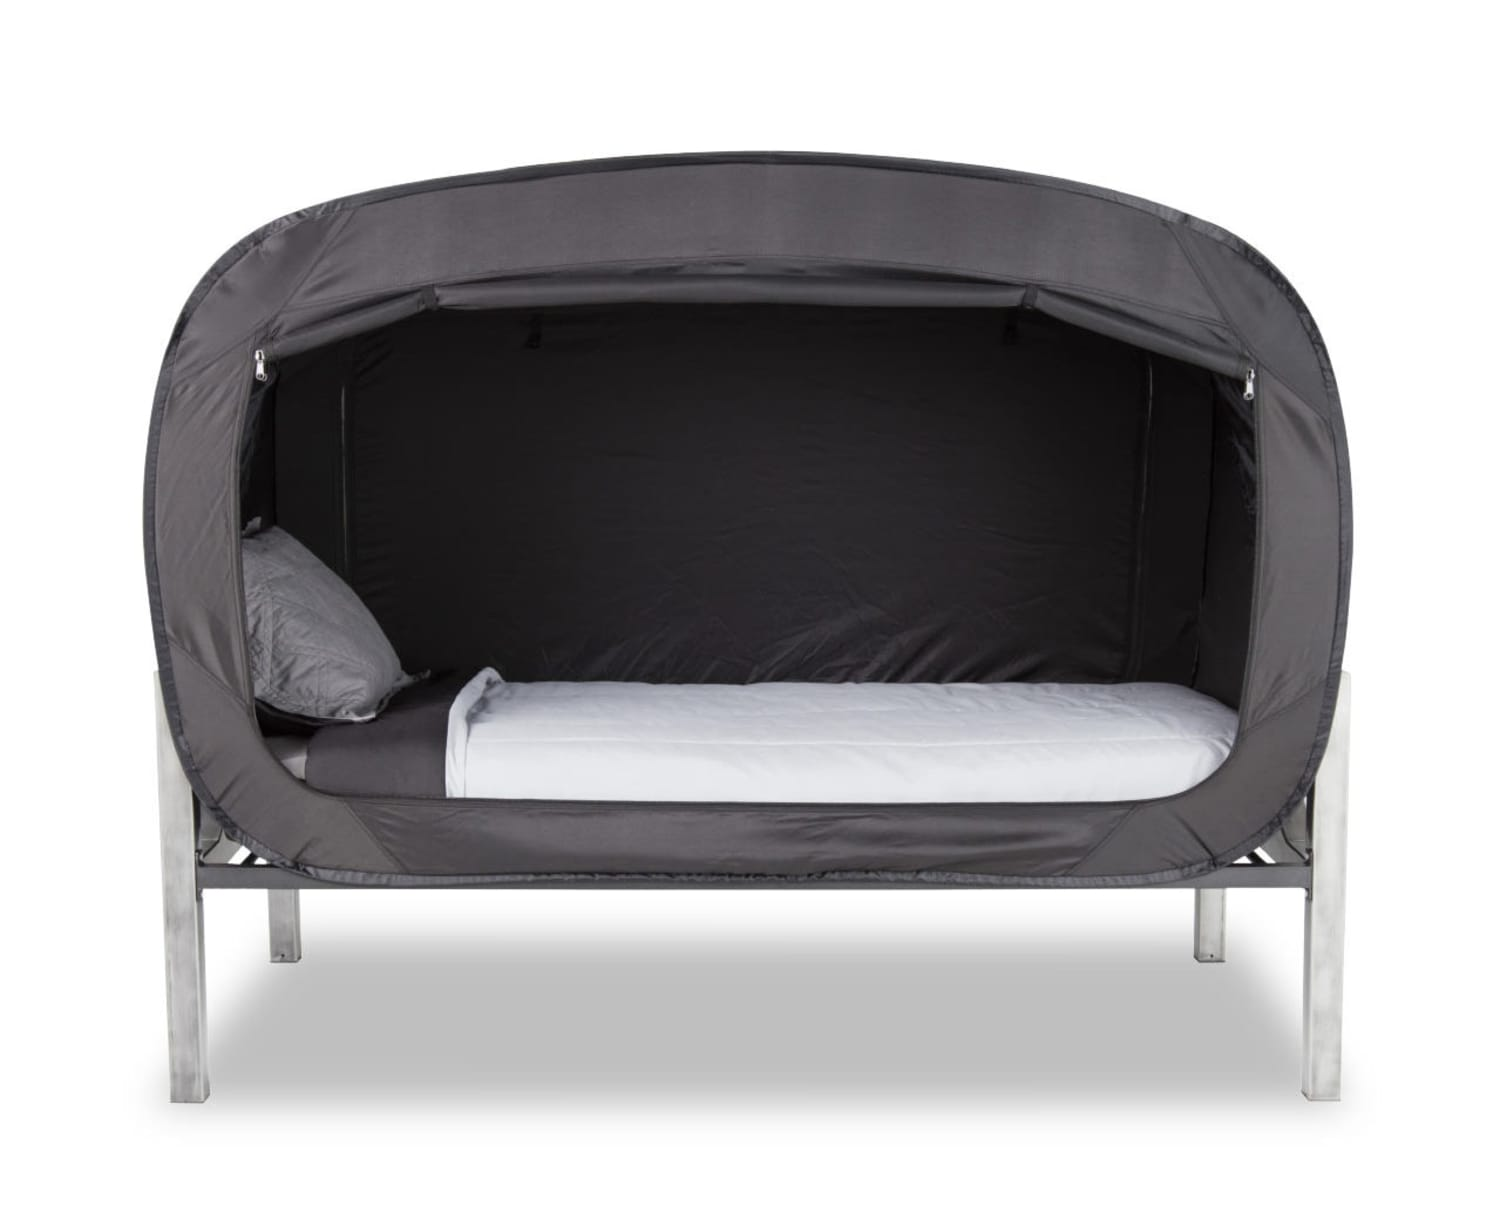 The Ultimate Nap: Now You Can Pop a Tent Over Your Bed